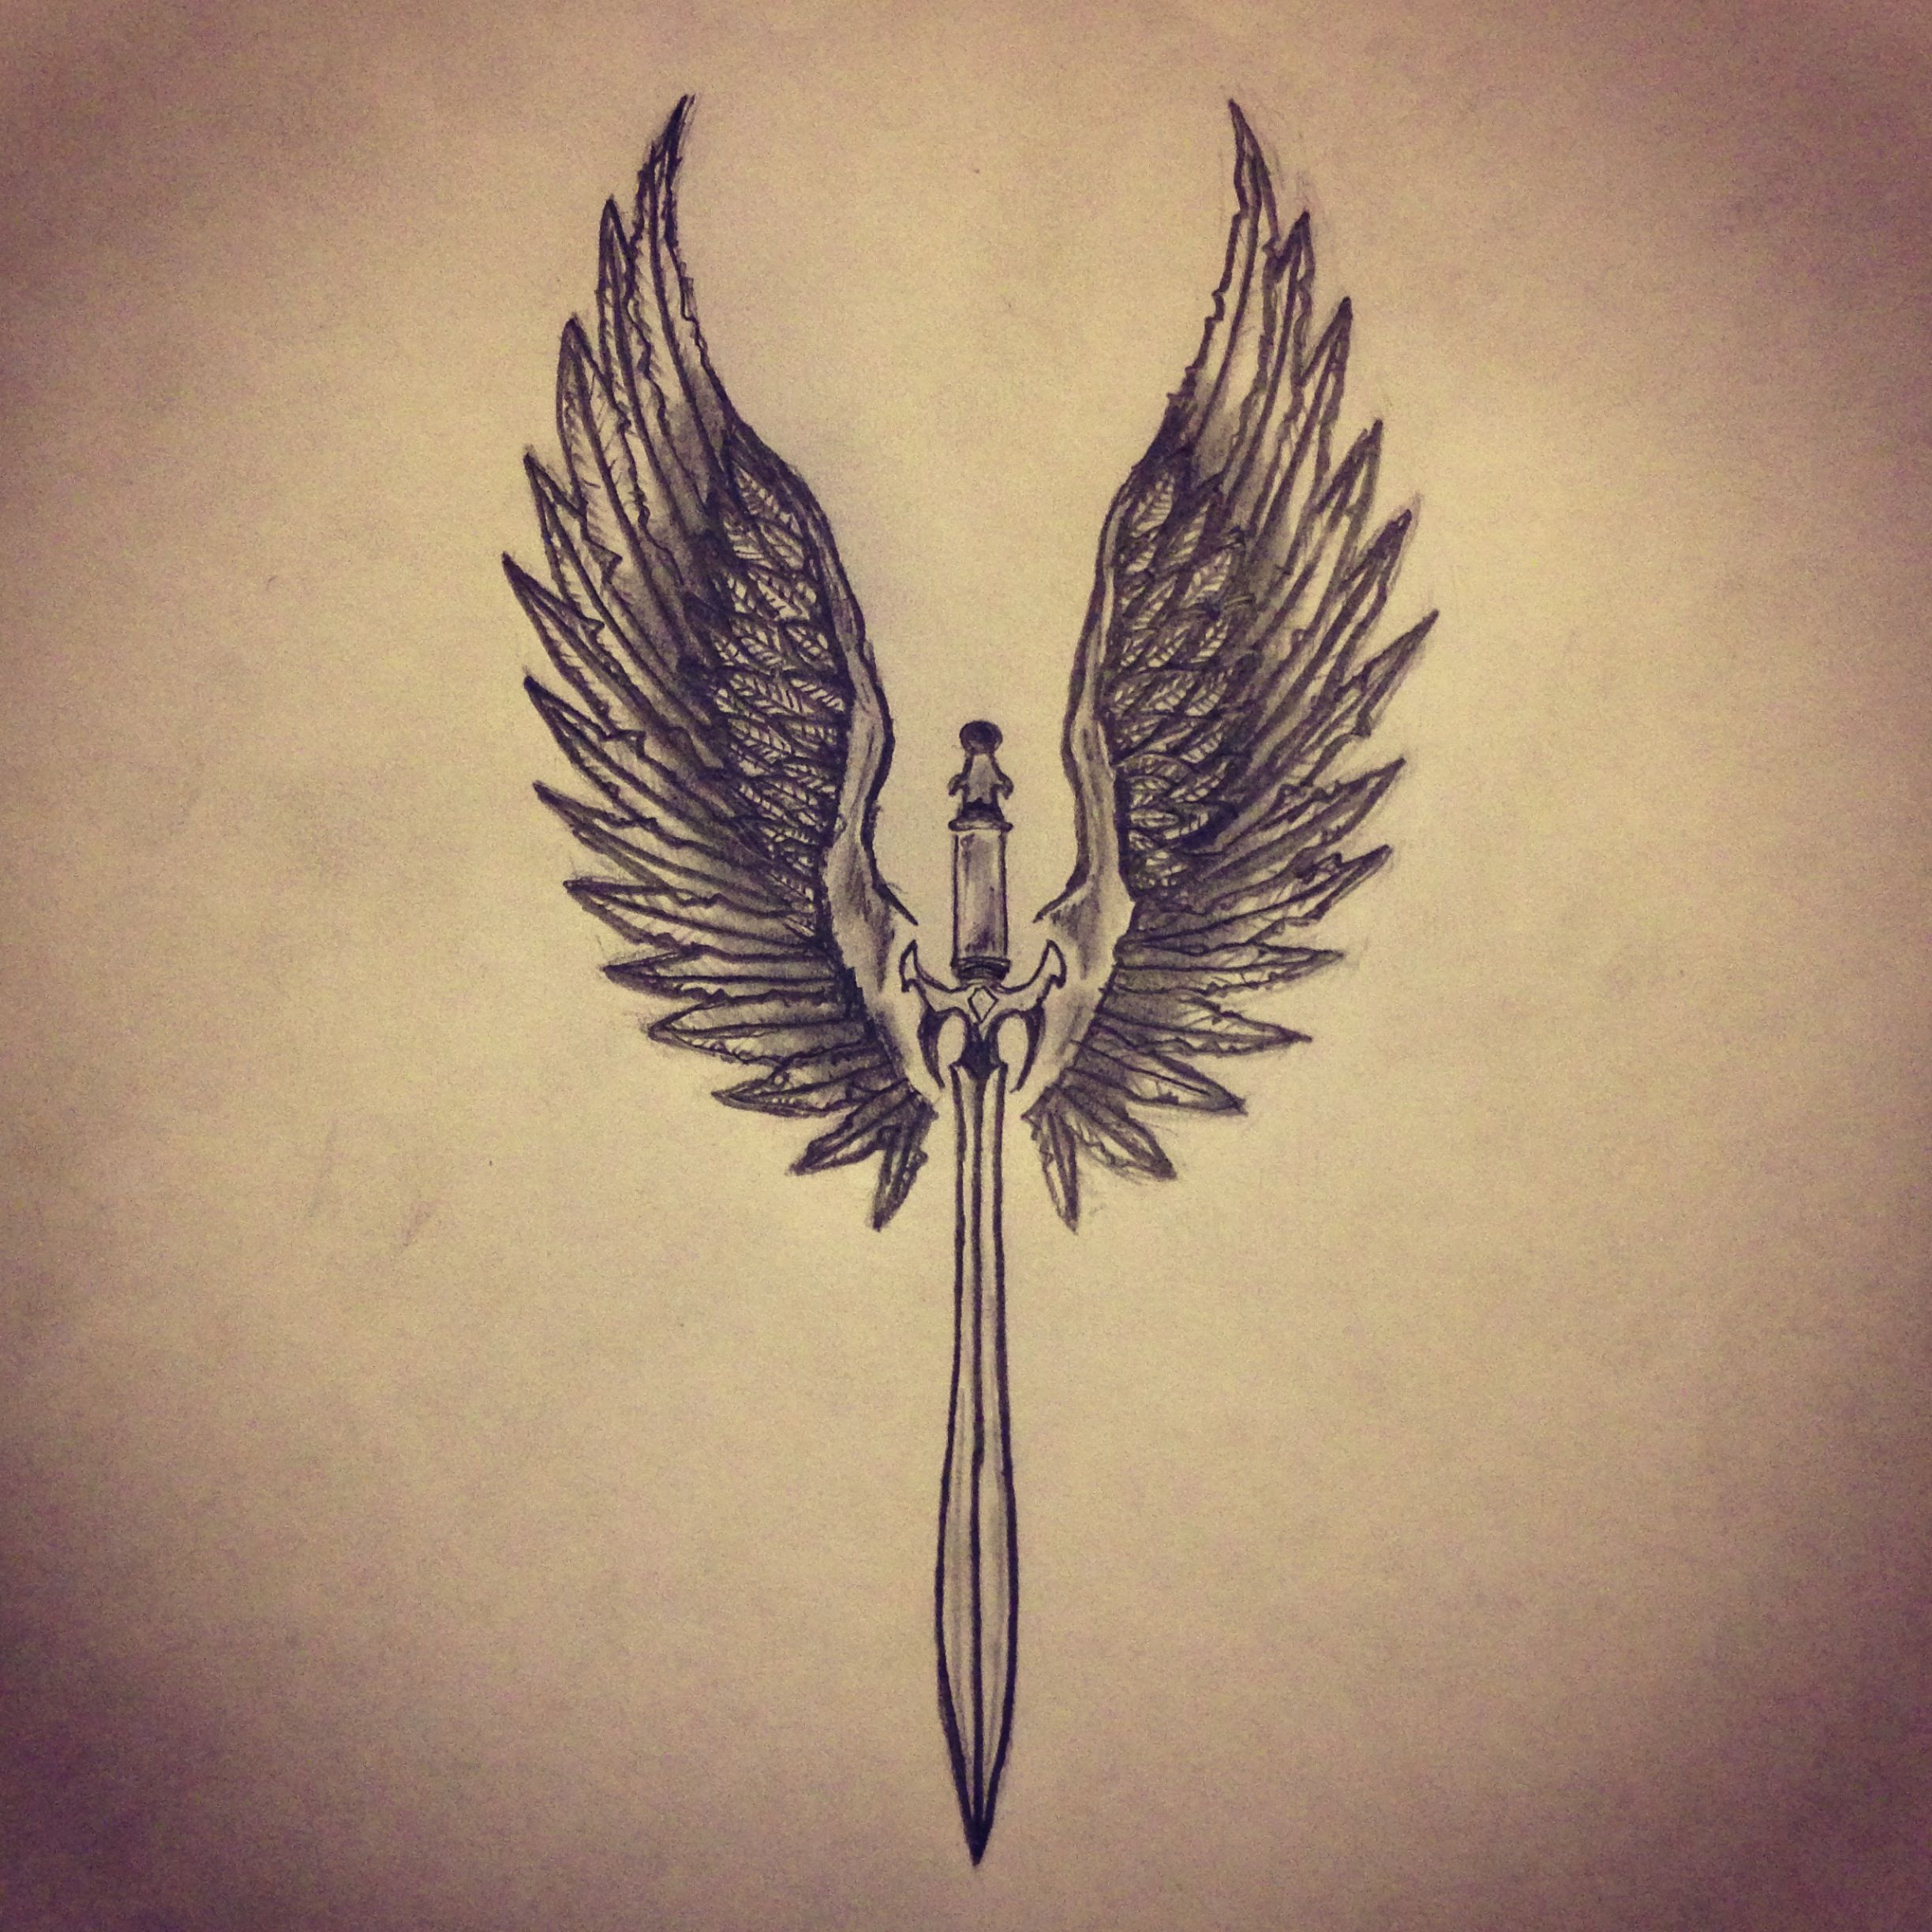 Angel Wings Sword Tattoo Sk Art Sketches All Pieces T Shirt Fredom Buterfly Wanita B0020 Sketch By Ranz